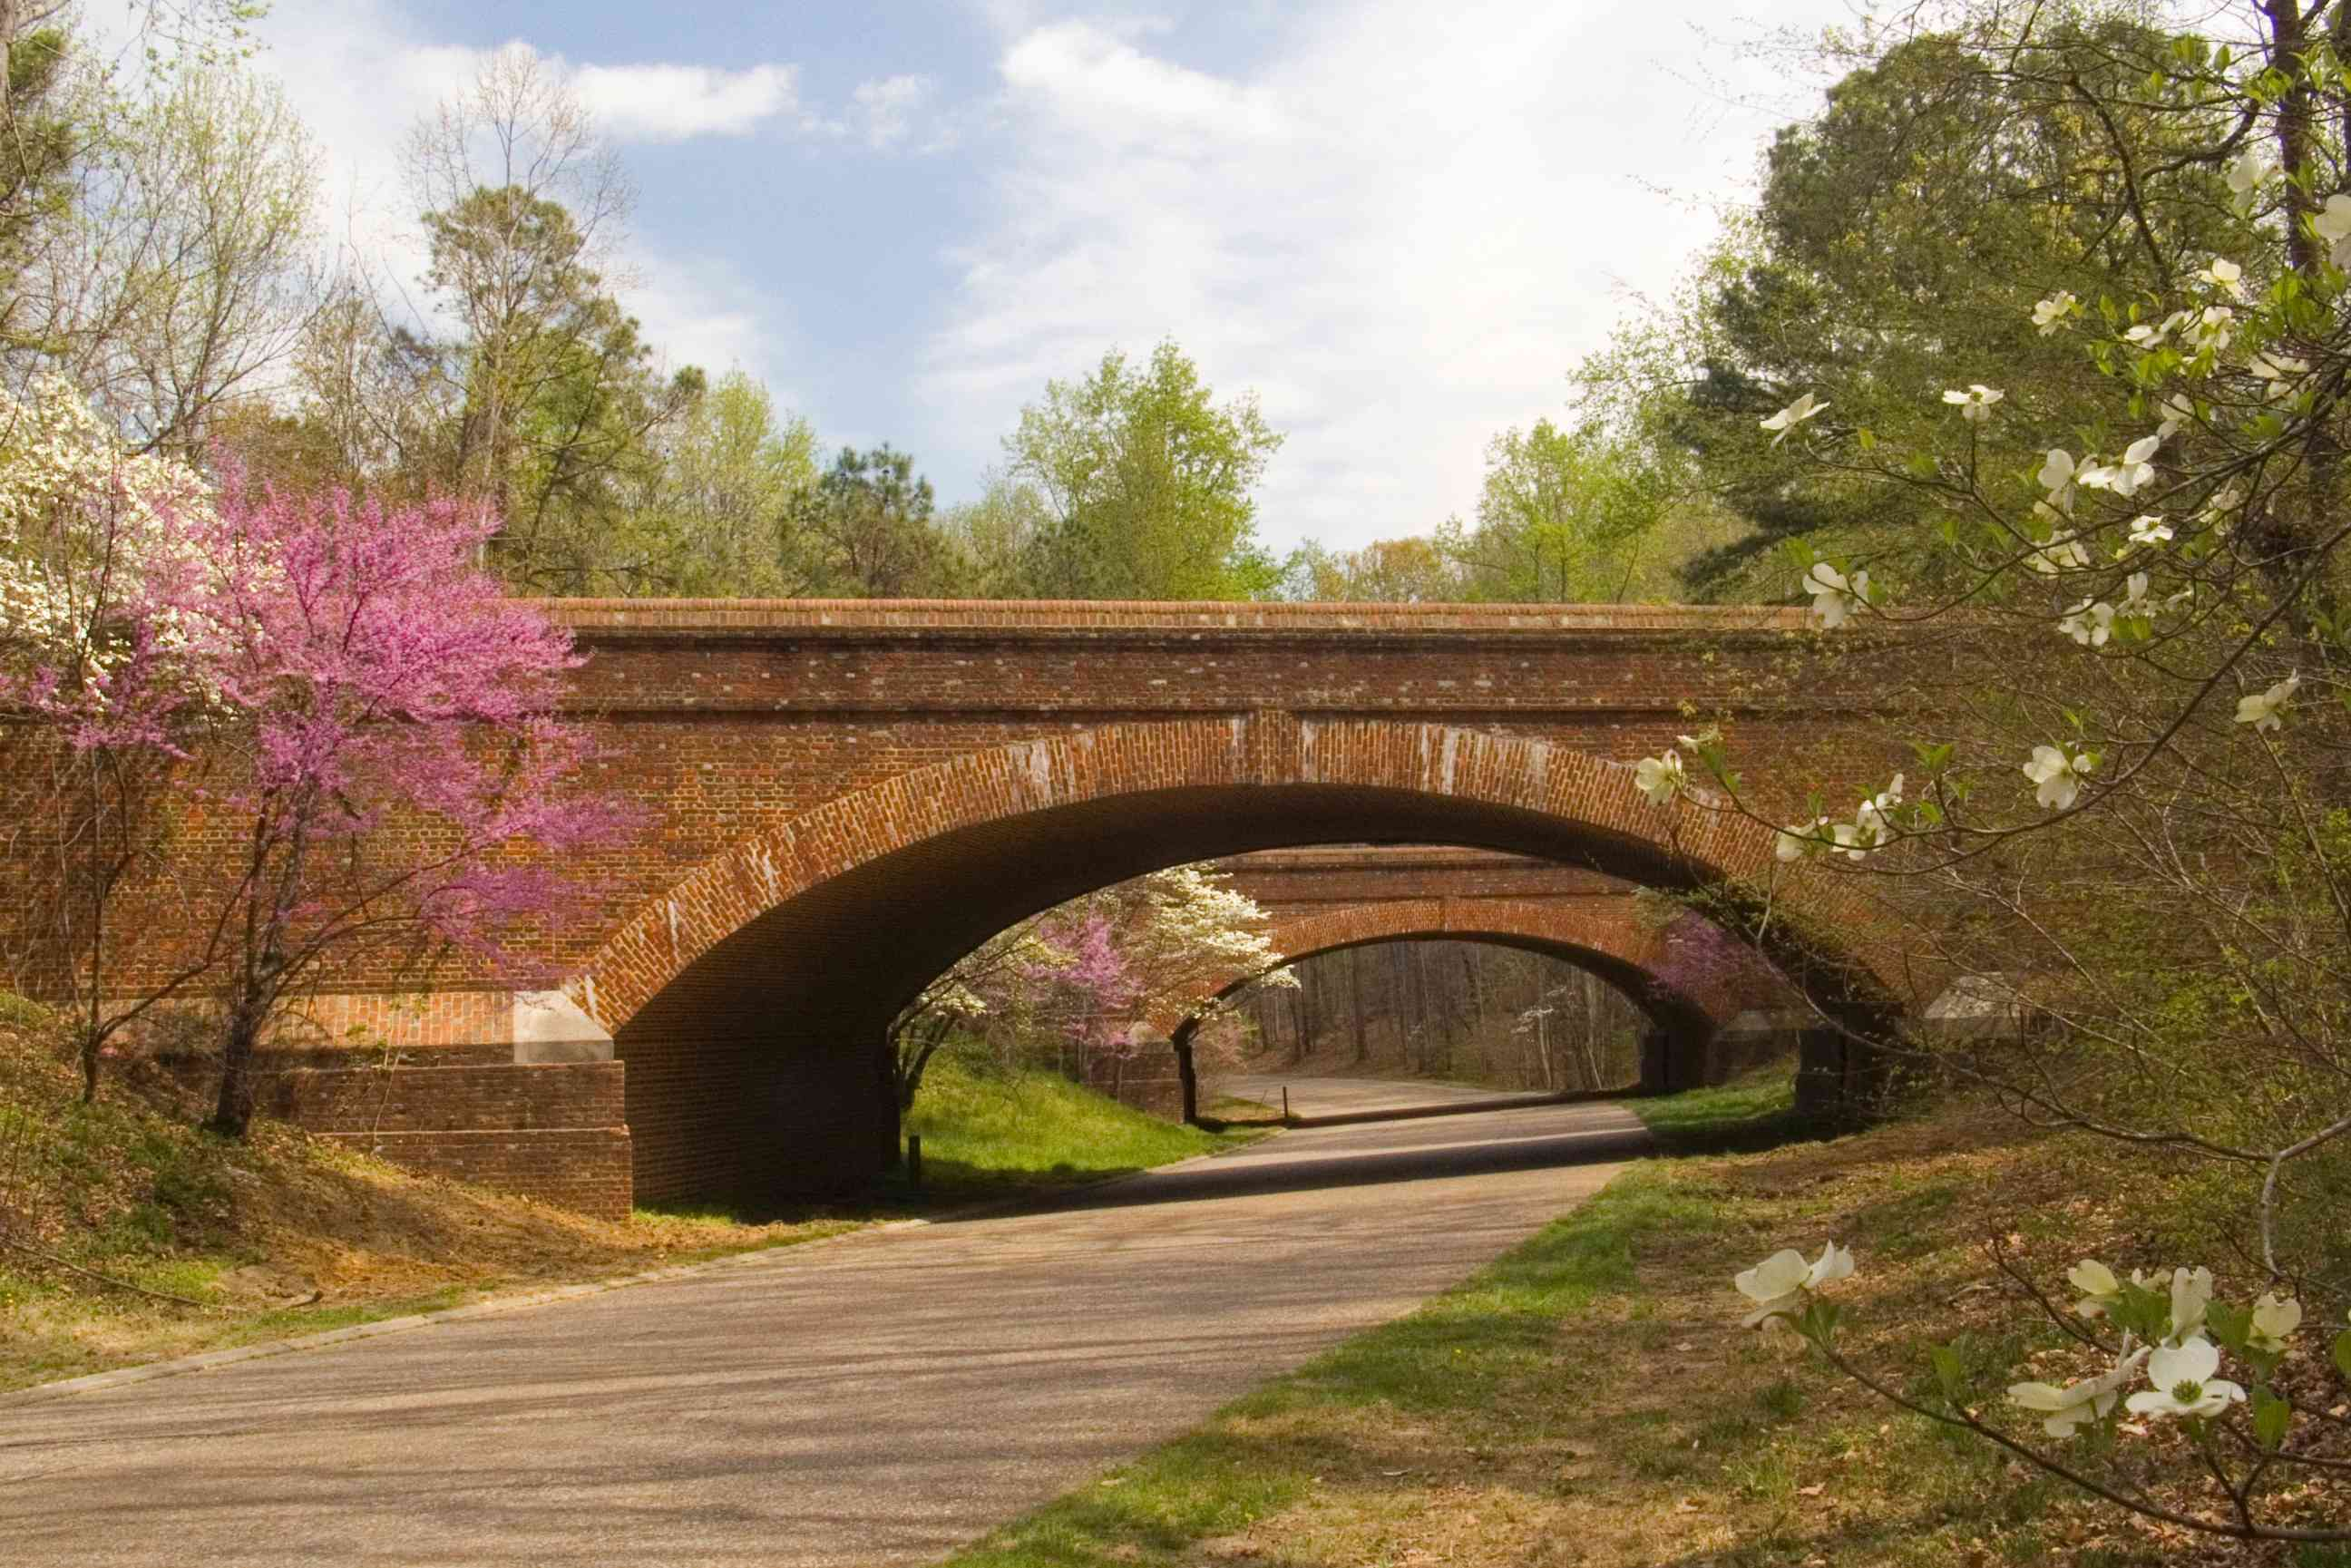 Bridges over Colonial Parkway with springtime blooms